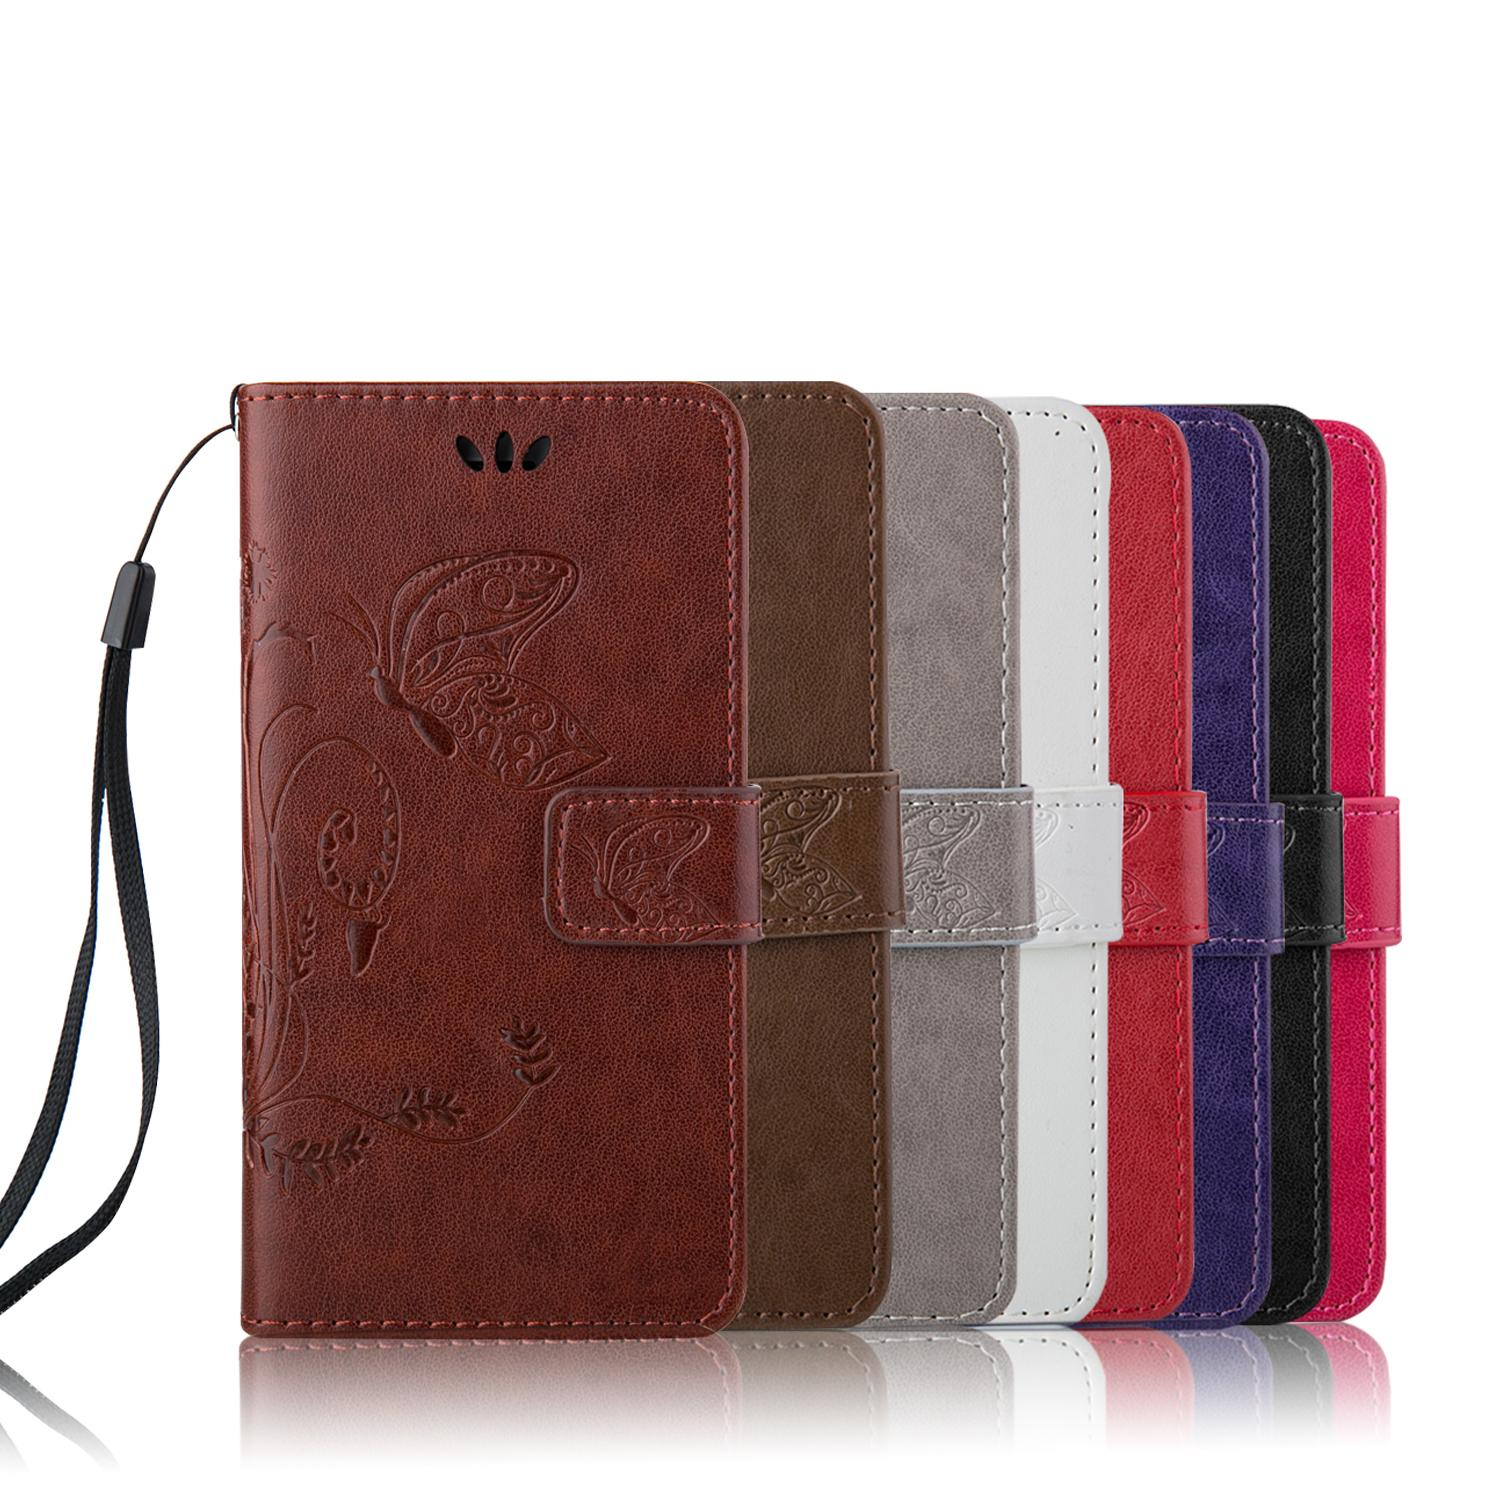 Wallet Cases Luxury Book Style PU Leather Flip Case Cover coque iPhone 6 6s plus ShockProof Bags Lanyard